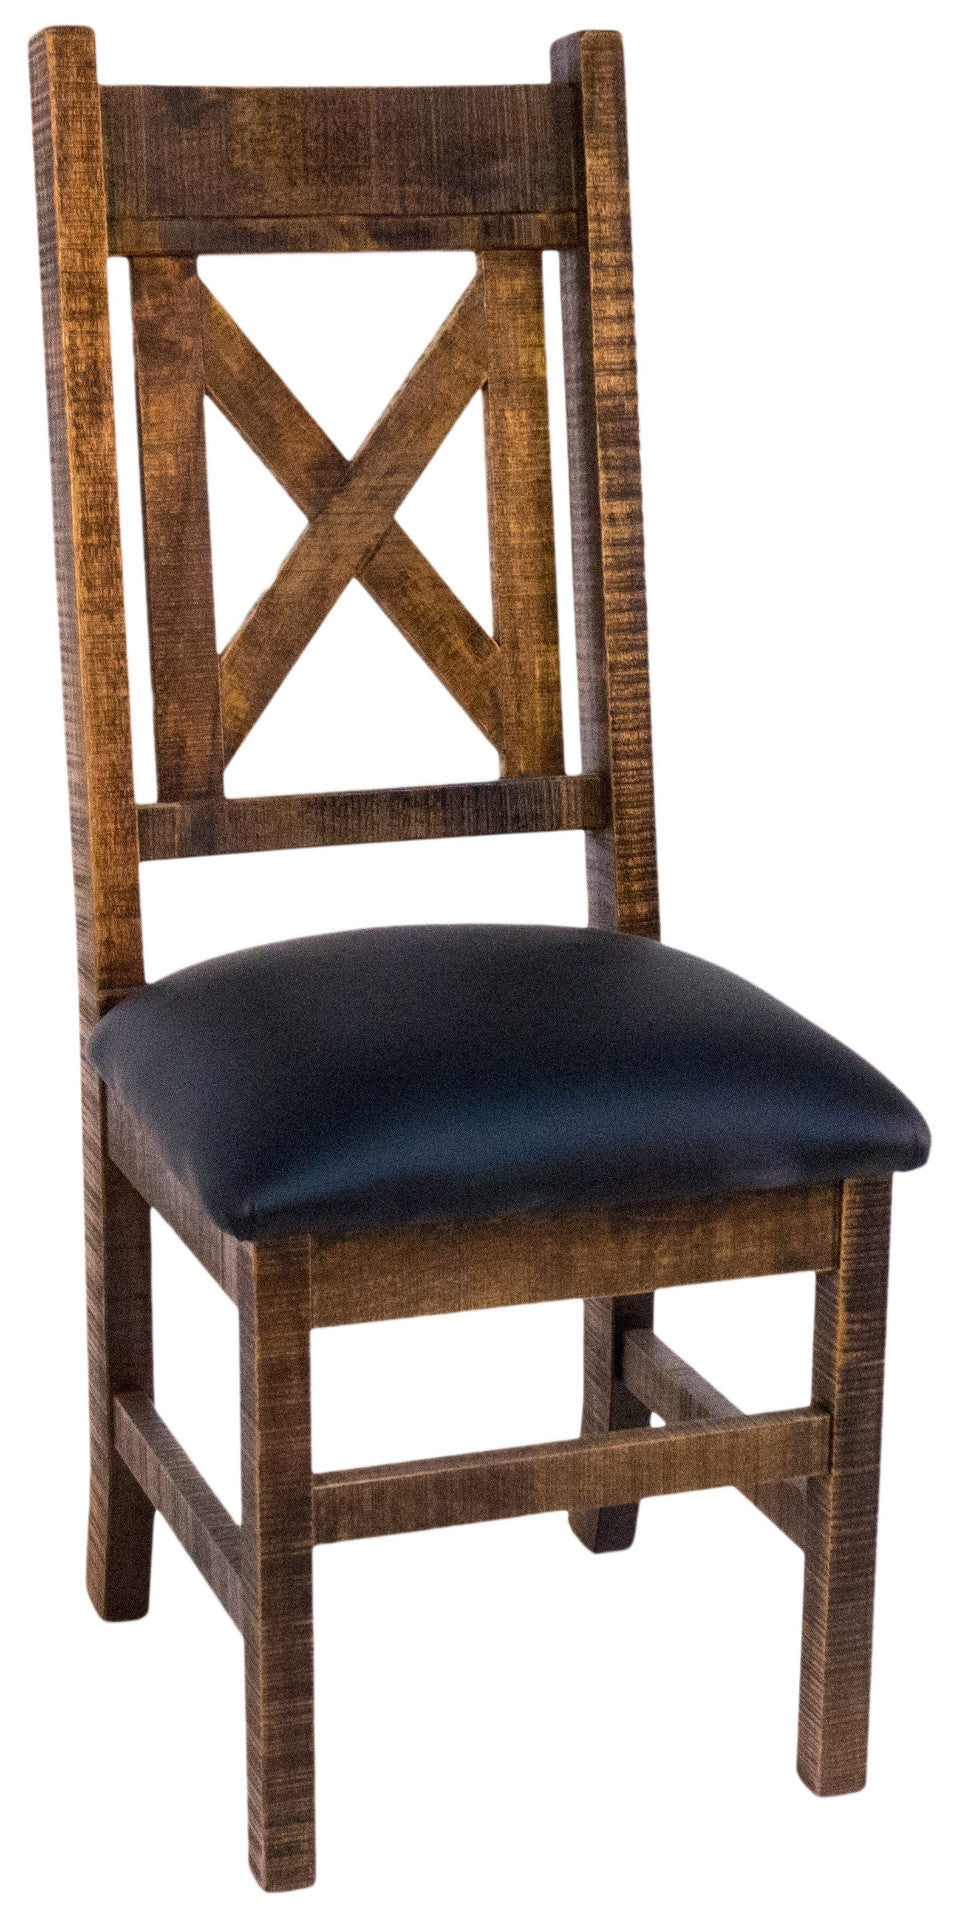 R751 Rustic X-Back Chair